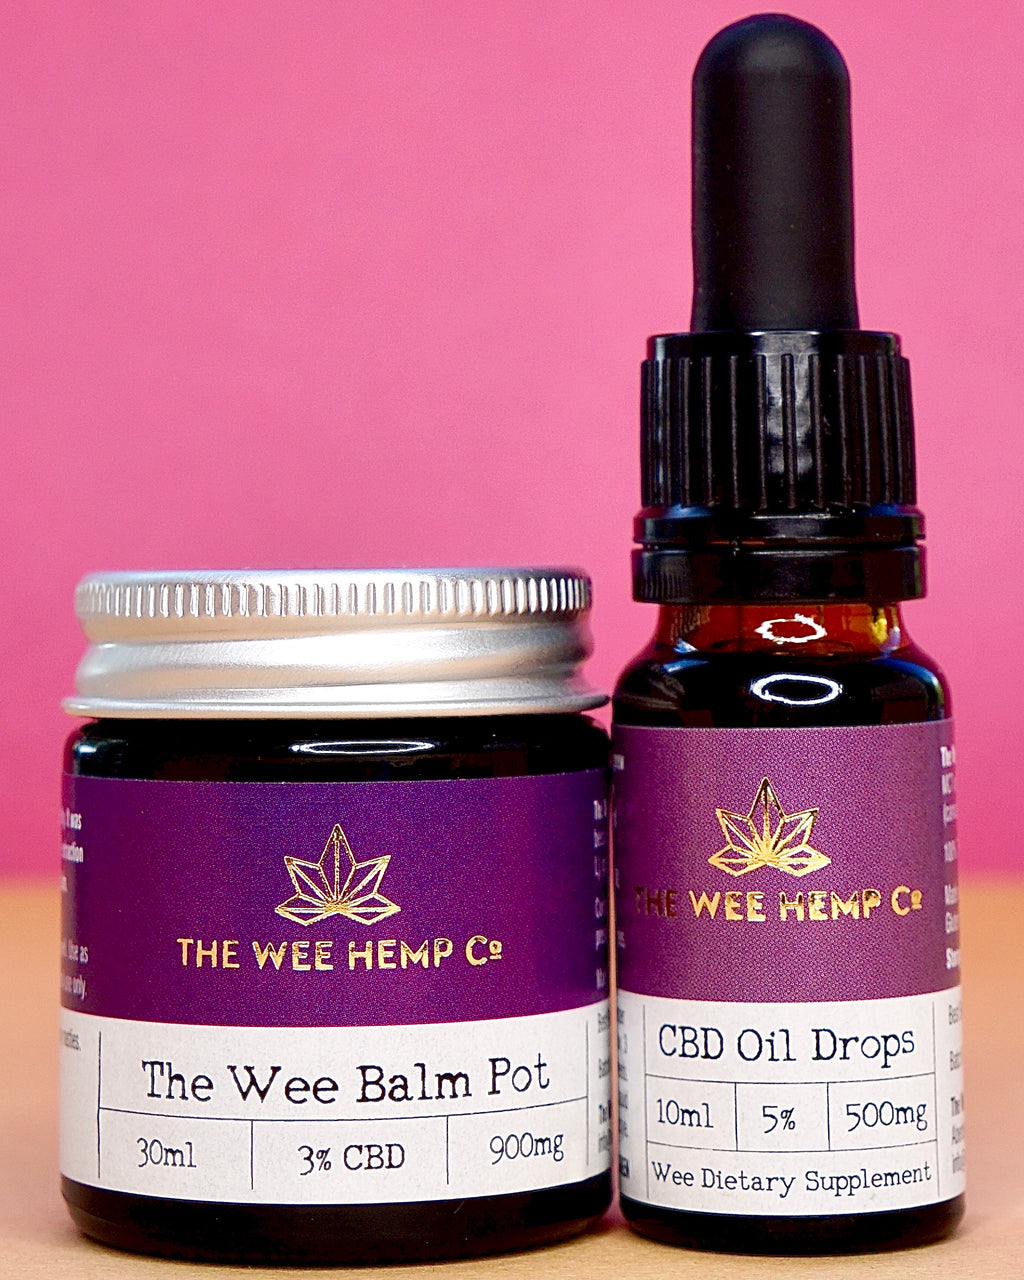 The Wee Combo - The Wee Balm Pot & Oral Supplement Pack The Wee Balm Pot & 5%, 500mg Broad Spectrum CBD Drops & The Wee Balm Pot, 3% 300mg Full Spectrum Balm, All natural ingredients The Wee Hemp Company CBD Oil Shop | Wee Hemp CBD Oil Shop | Scotland's multi award winning CBD company | CBD Oil Shop | Cannabidiol drops | Aberdeen & Aberdeenshire | CBD Oil, CBD Balm, CBD Vapes E-liquid, CBD Cream, CBD Full Spectrum CBD Oil, Broad Spectrum CBD Oil, 3rd party lab tested CBD Oil